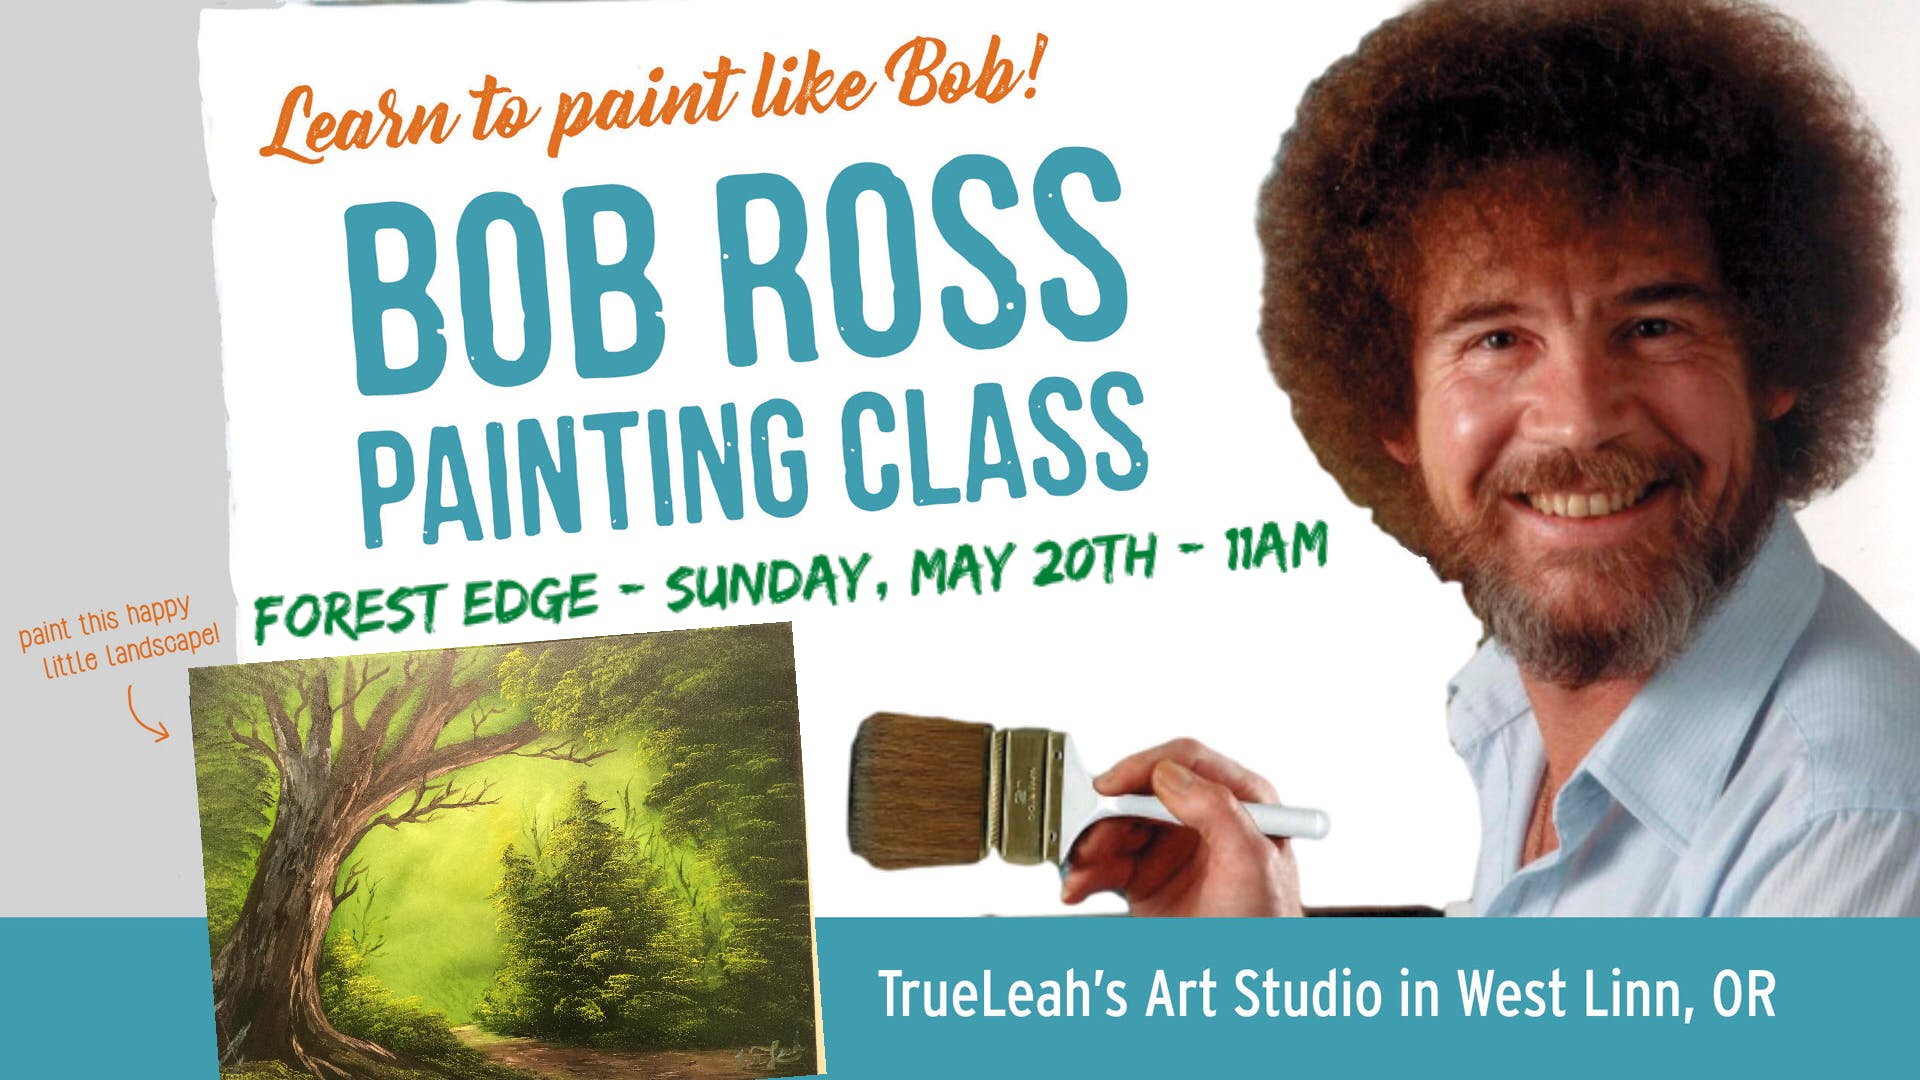 Bob Ross Painting Class Forest Edge At Trueleahs Art Studio West